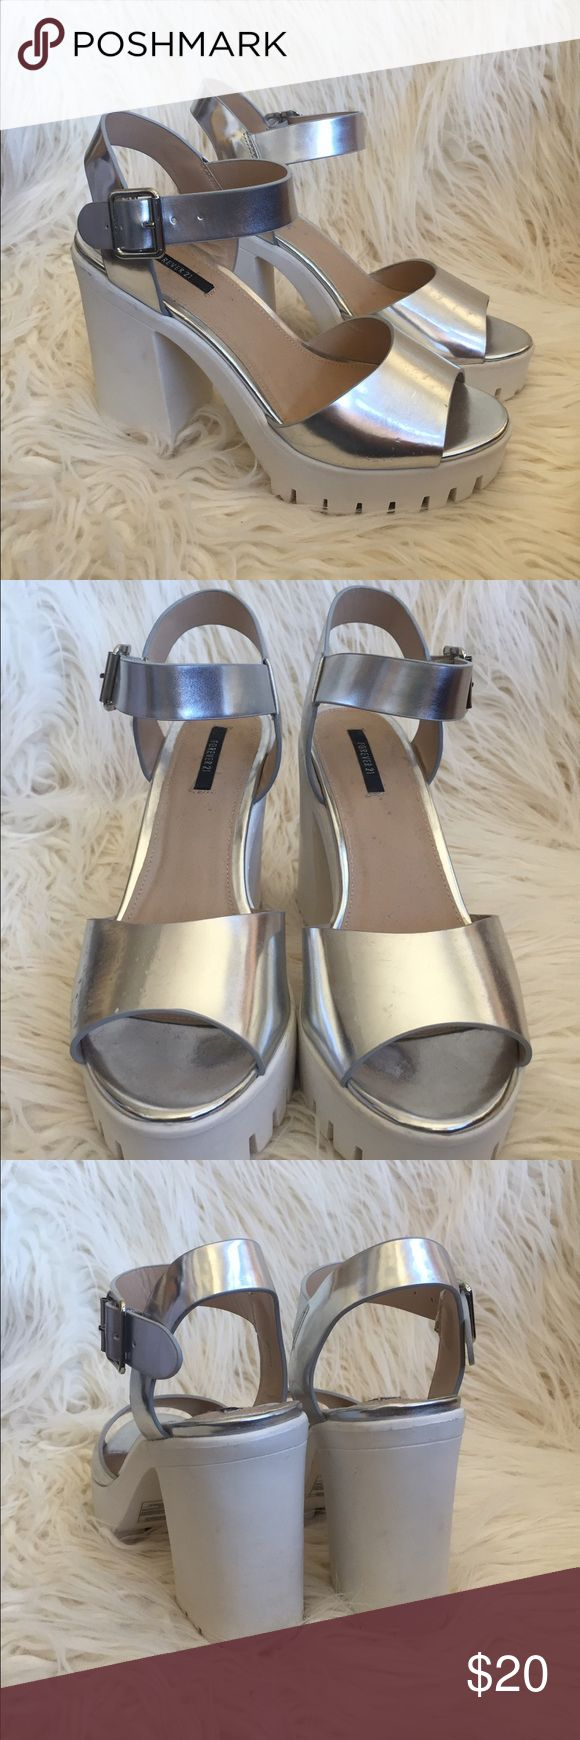 Metallic strappy heels Silver metallic strappy heels from F21! Size 7.5 but I'm a 7 and they fit great. Worn once, some marks on heel of shoe and on bottom, otherwise perfect condition ASOS Shoes Heels